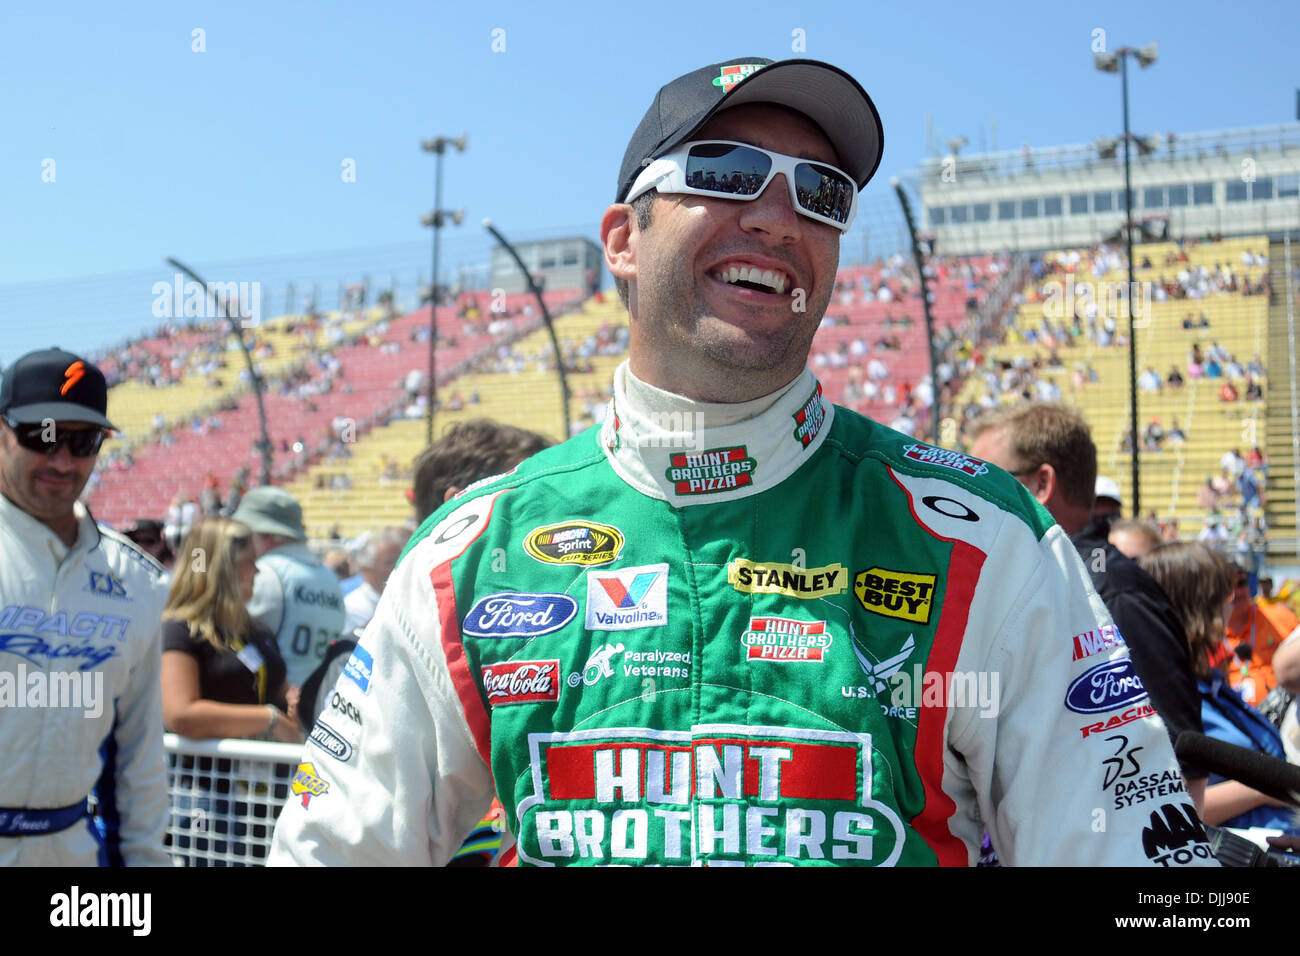 Aug. 08, 2010 - Watkins Glen, New York, United States of America - August 8, 2010: Petty Motorsports driver ELLIOTT SADLER smiles as he looks at other drivers on the stage before driver introductions for the Heluva Good! Sour Cream Dips at the Glen Sprint Cup race at Watkins Glen International, Watkins Glen, NY..Mandatory Credit: Michael Johnson / Southcreek Global (Credit Image: © - Stock Image